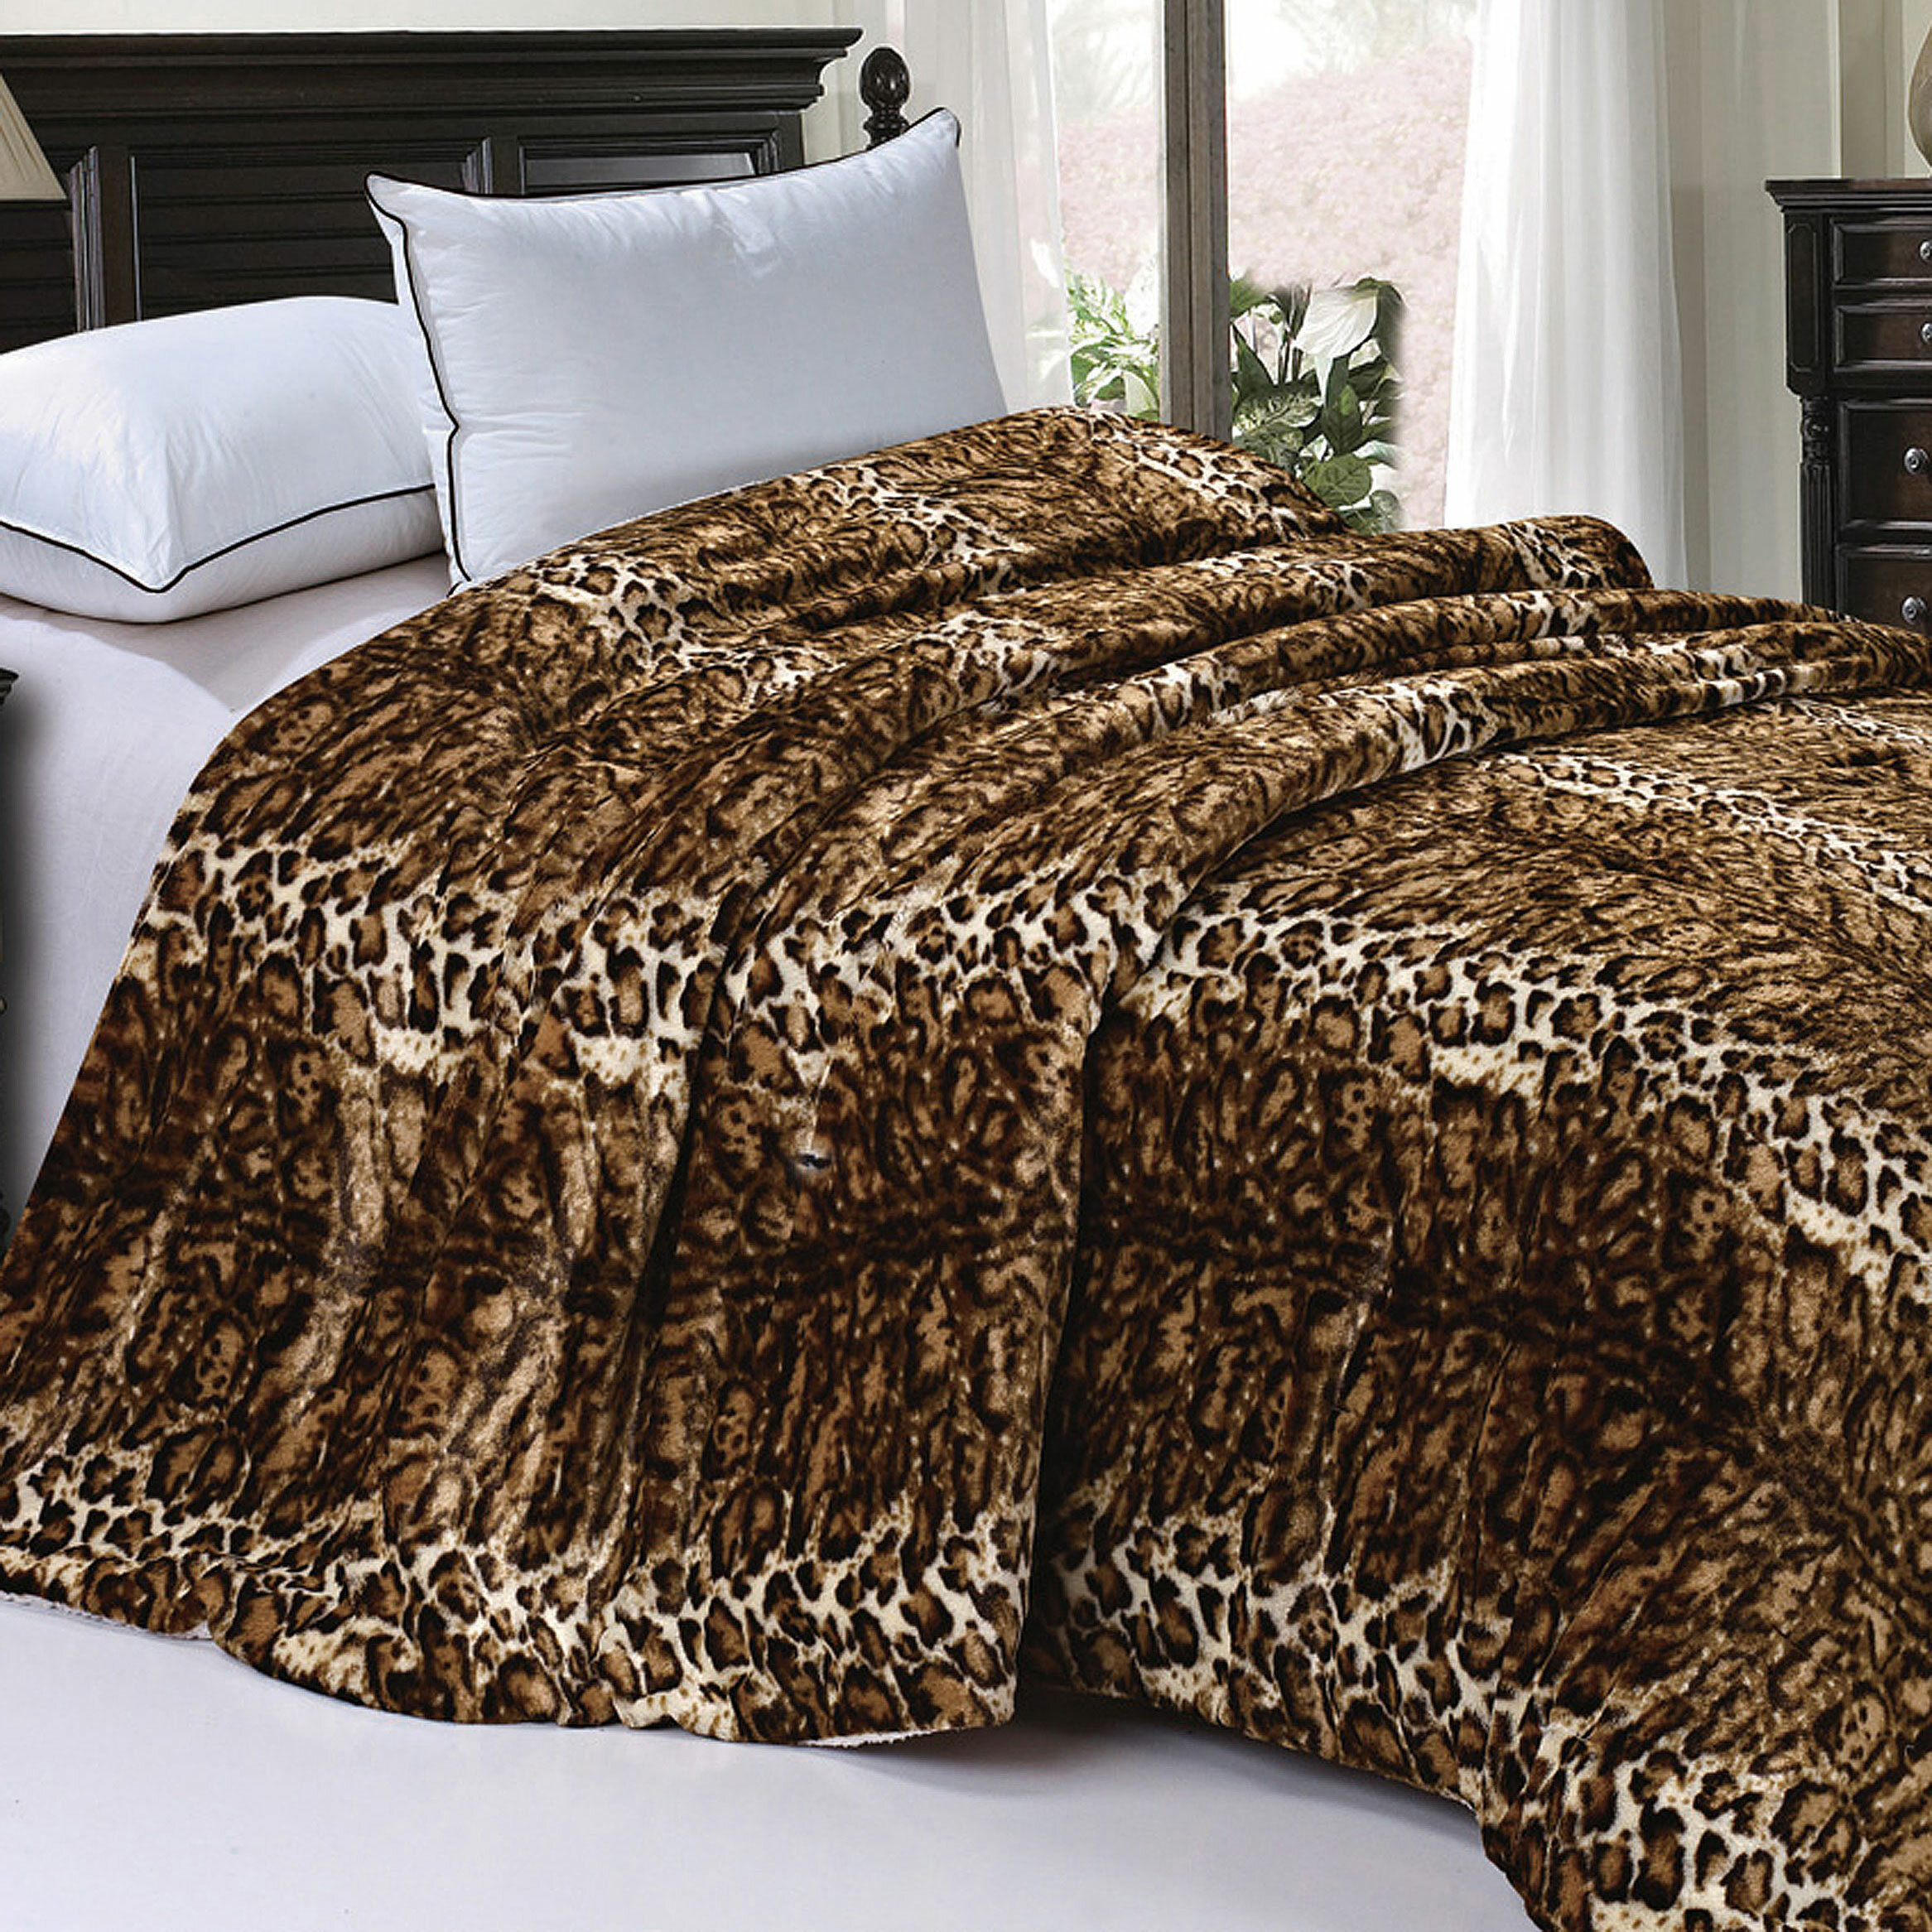 sets wolf grey xl fur blanket twin faux real sheets bedding white queen bed mink set fuzzy designs comforter luxury cheap bedspread